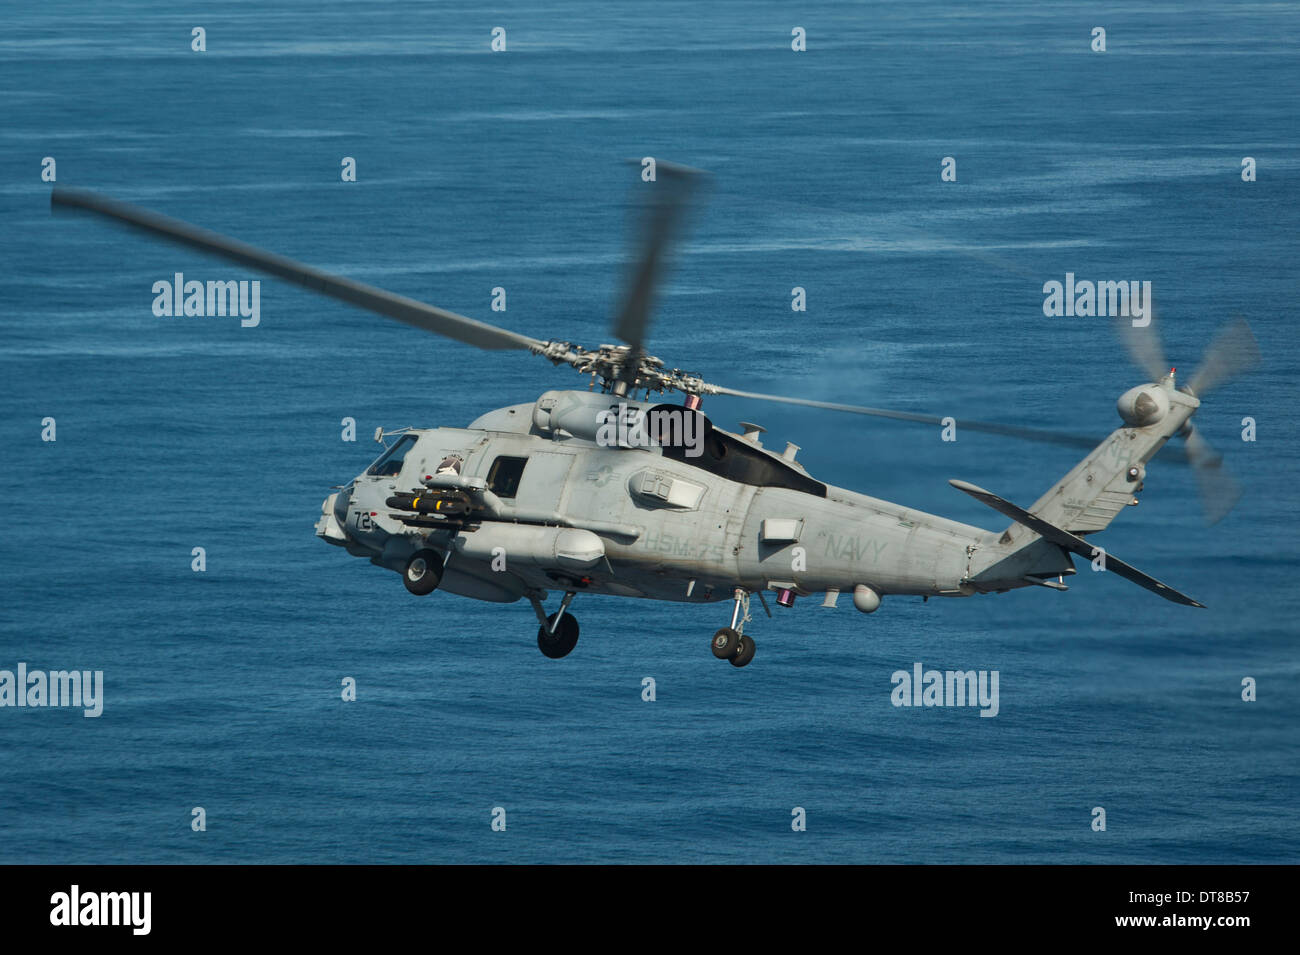 South China Sea, May 18, 2013 - An MH-60R Sea Hawk helicopter maneuvers over the South China Sea. - Stock Image